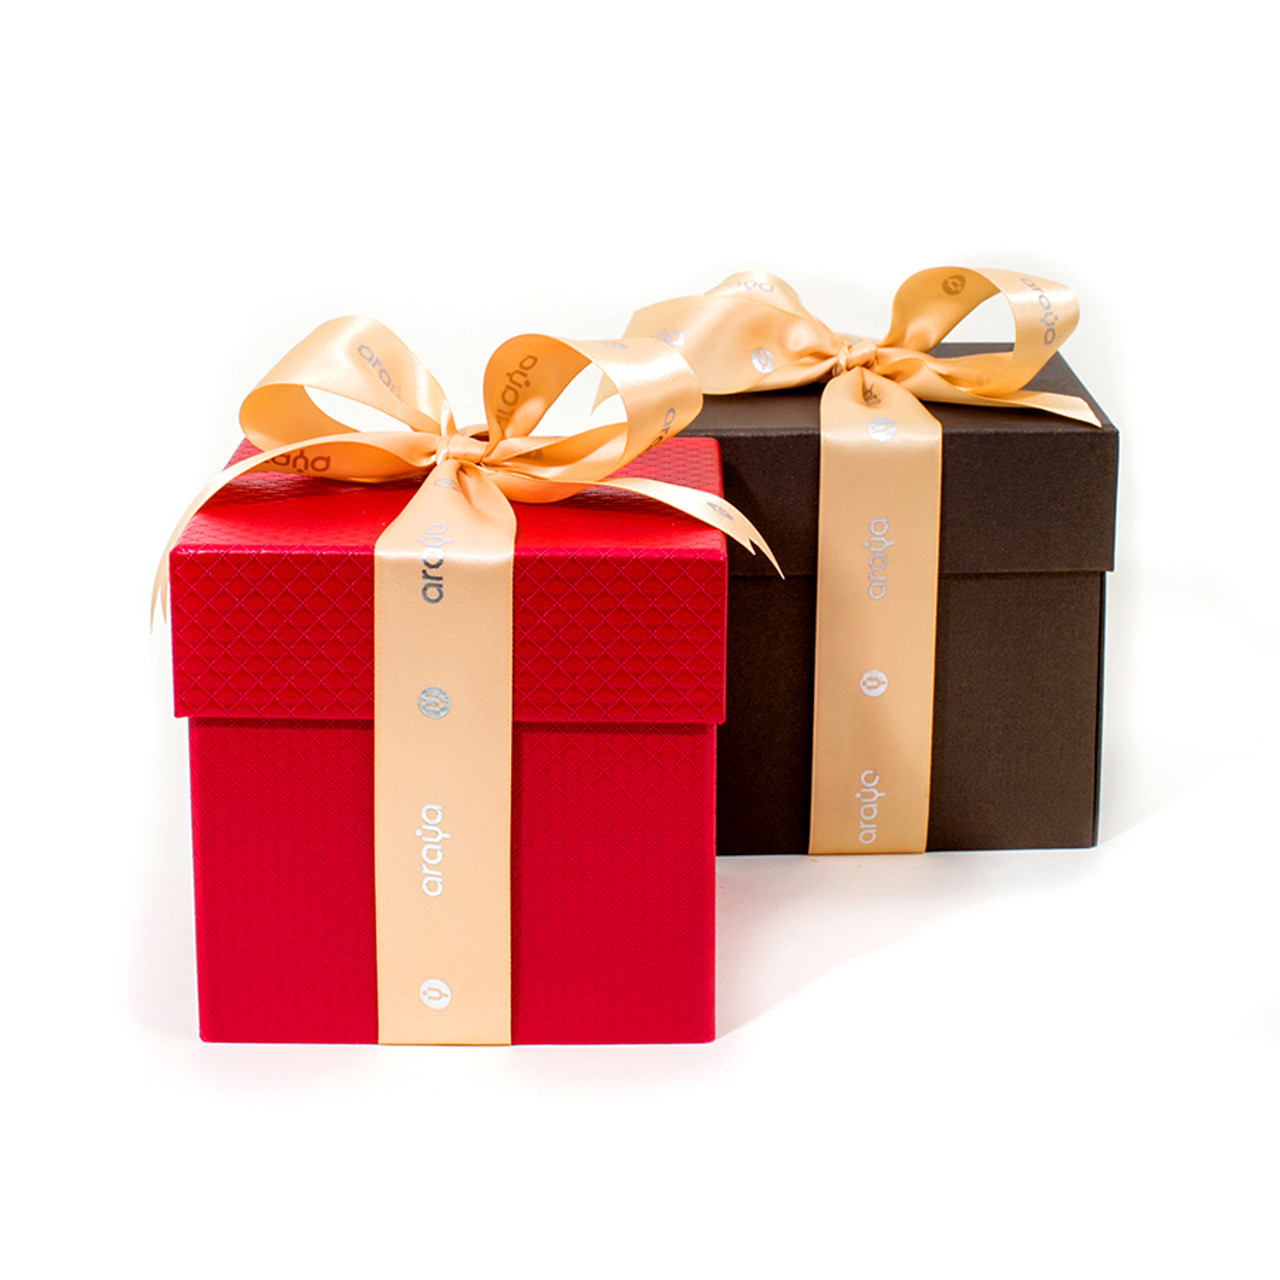 Multilayer Combination Gift Box - Available in Red & Bronze